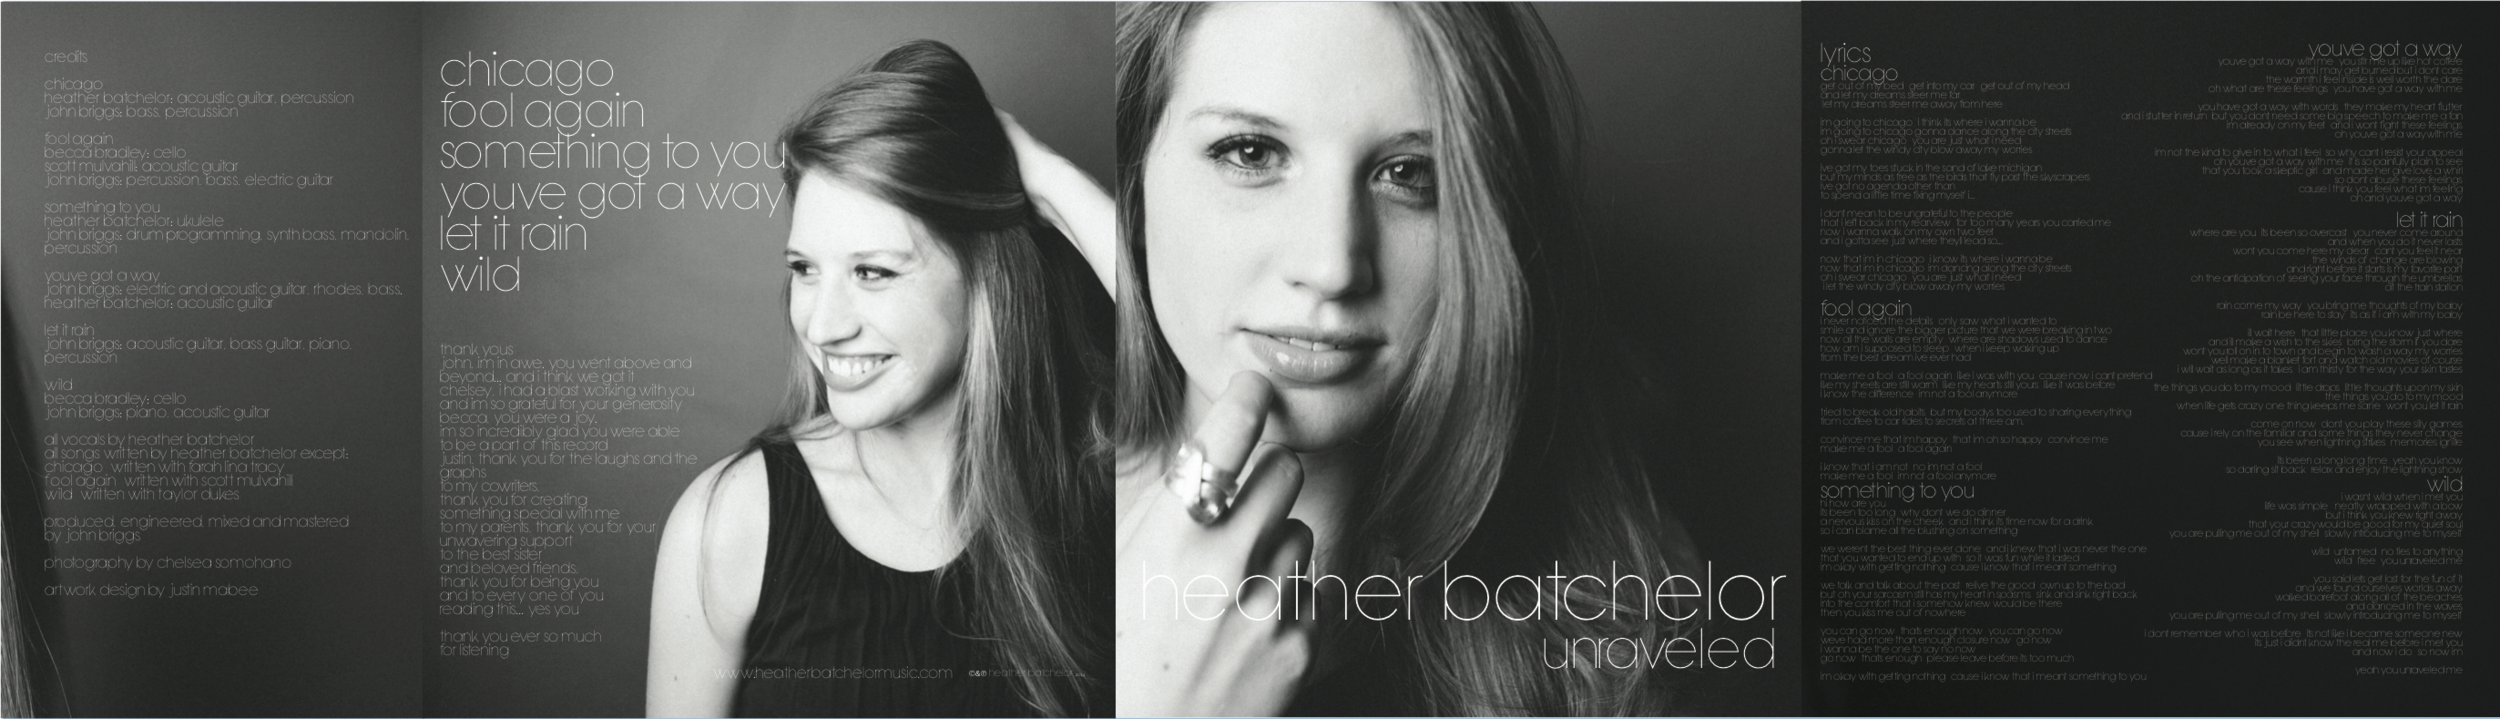 CD Album Artwork for Heather Batchelor, made with Adobe Illustrator and Adobe Photoshop